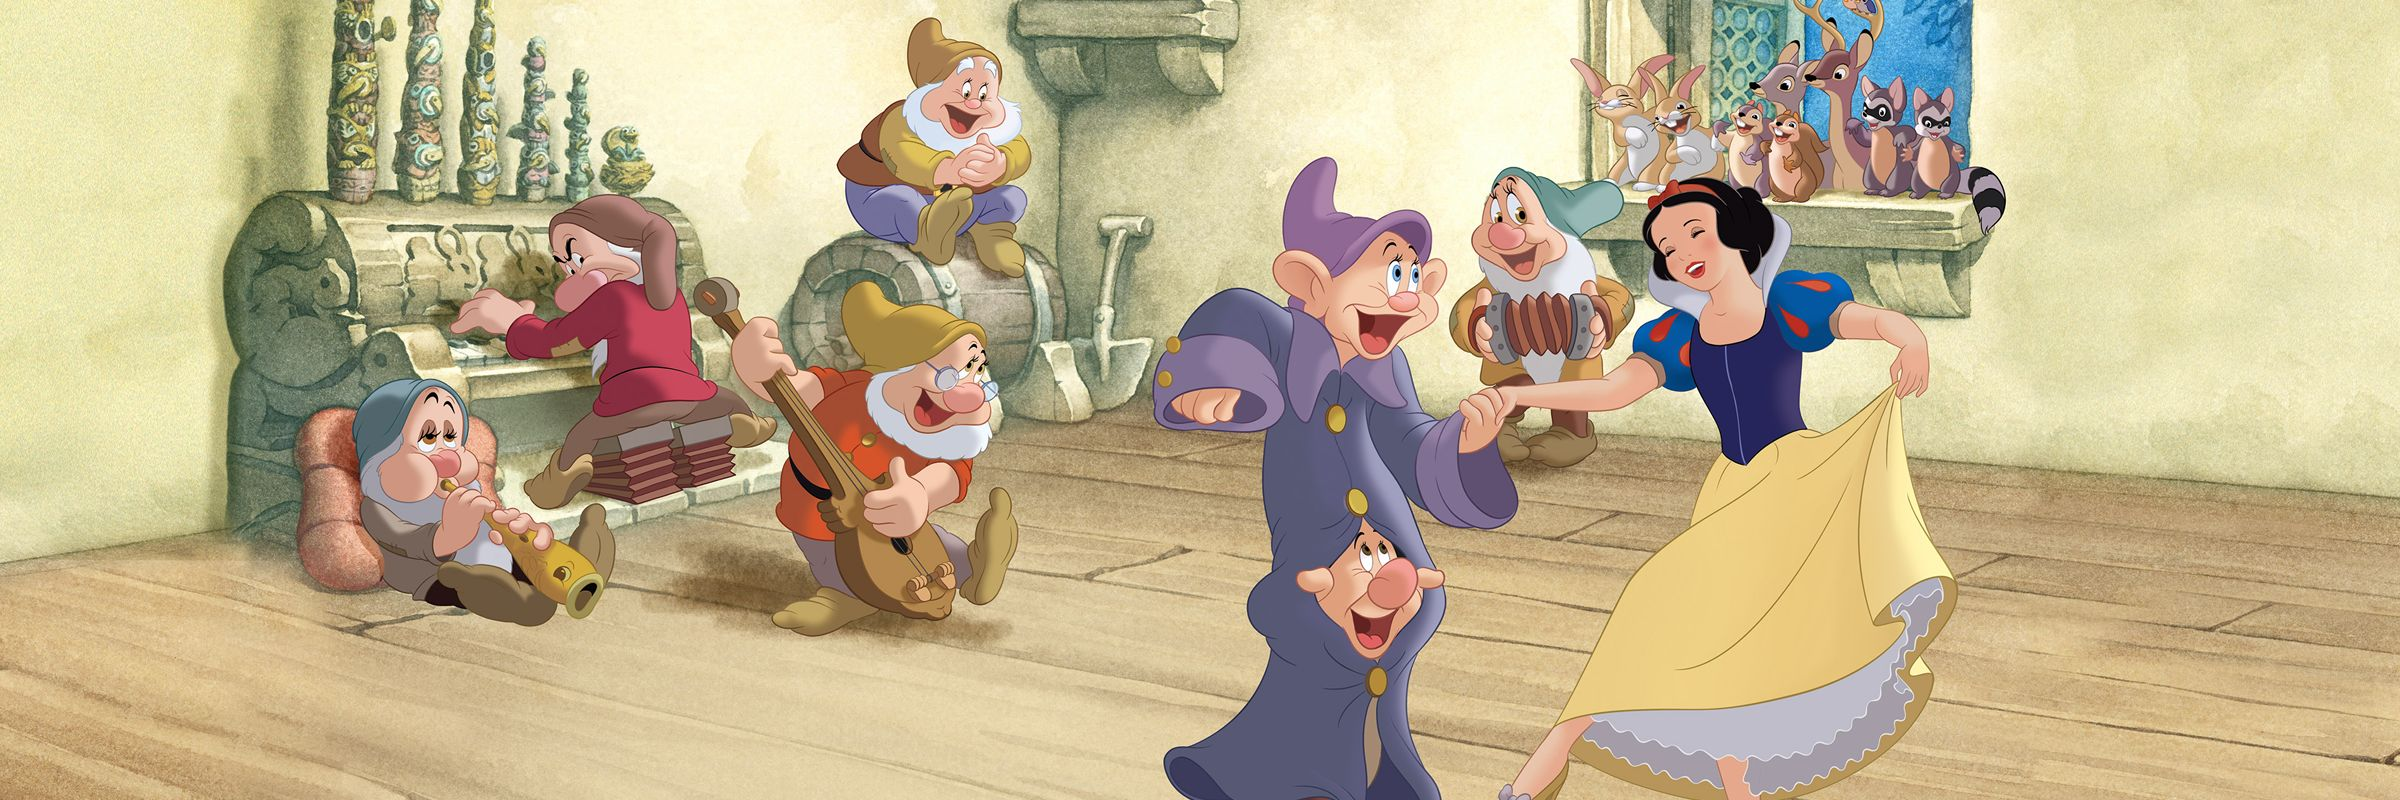 Snow White and The Seven Dwarfs | Full Movie | Movies Anywhere